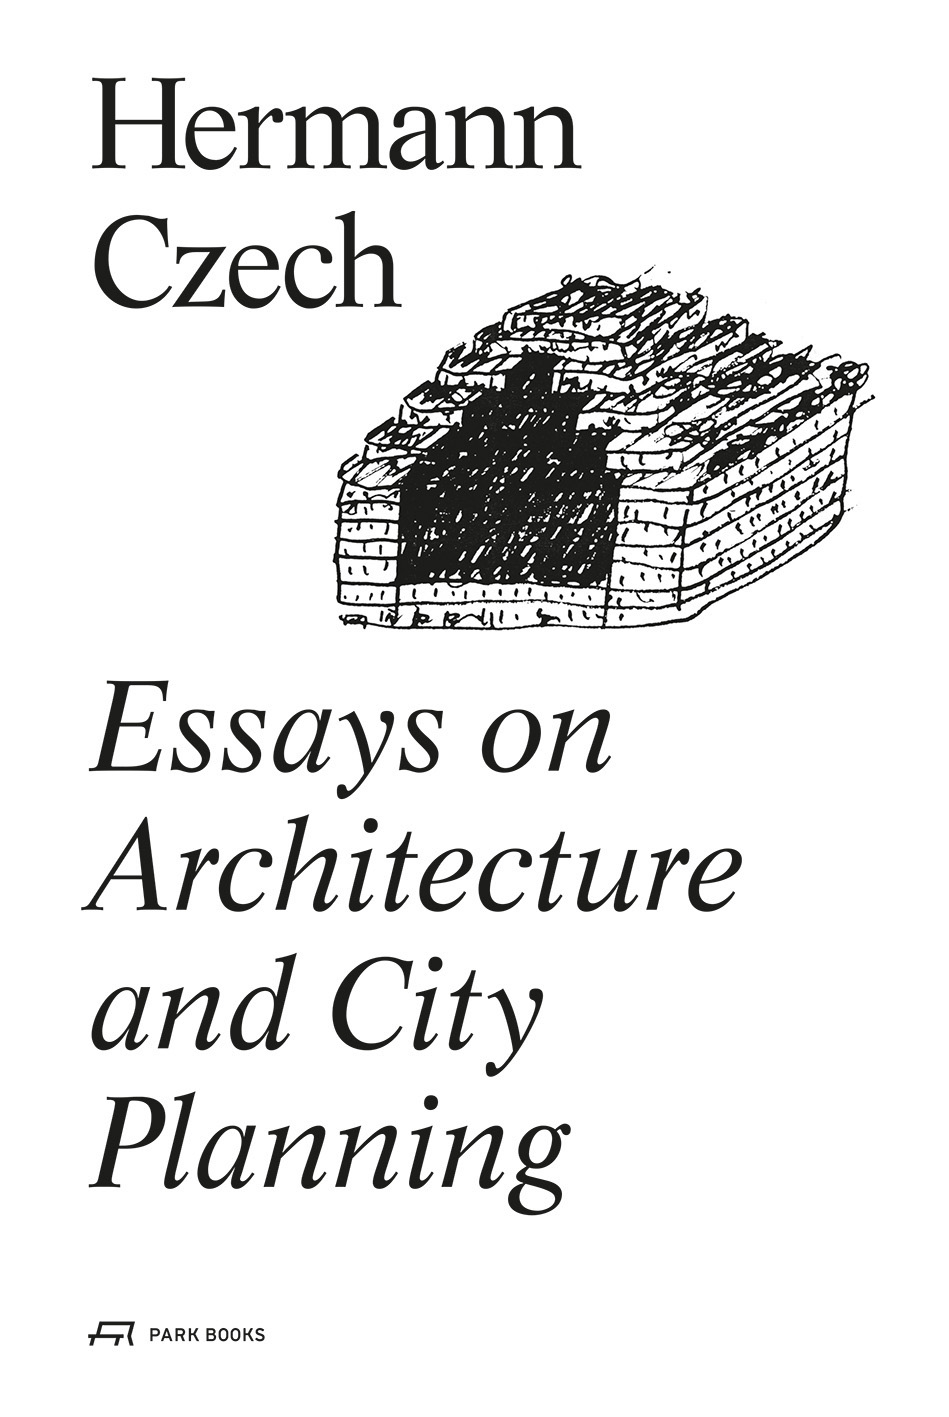 architecture essay topics architecture essay example purpose of an  essays on architecture architecture essays essays on essays on architecture and city planning czech feiersingeressays on